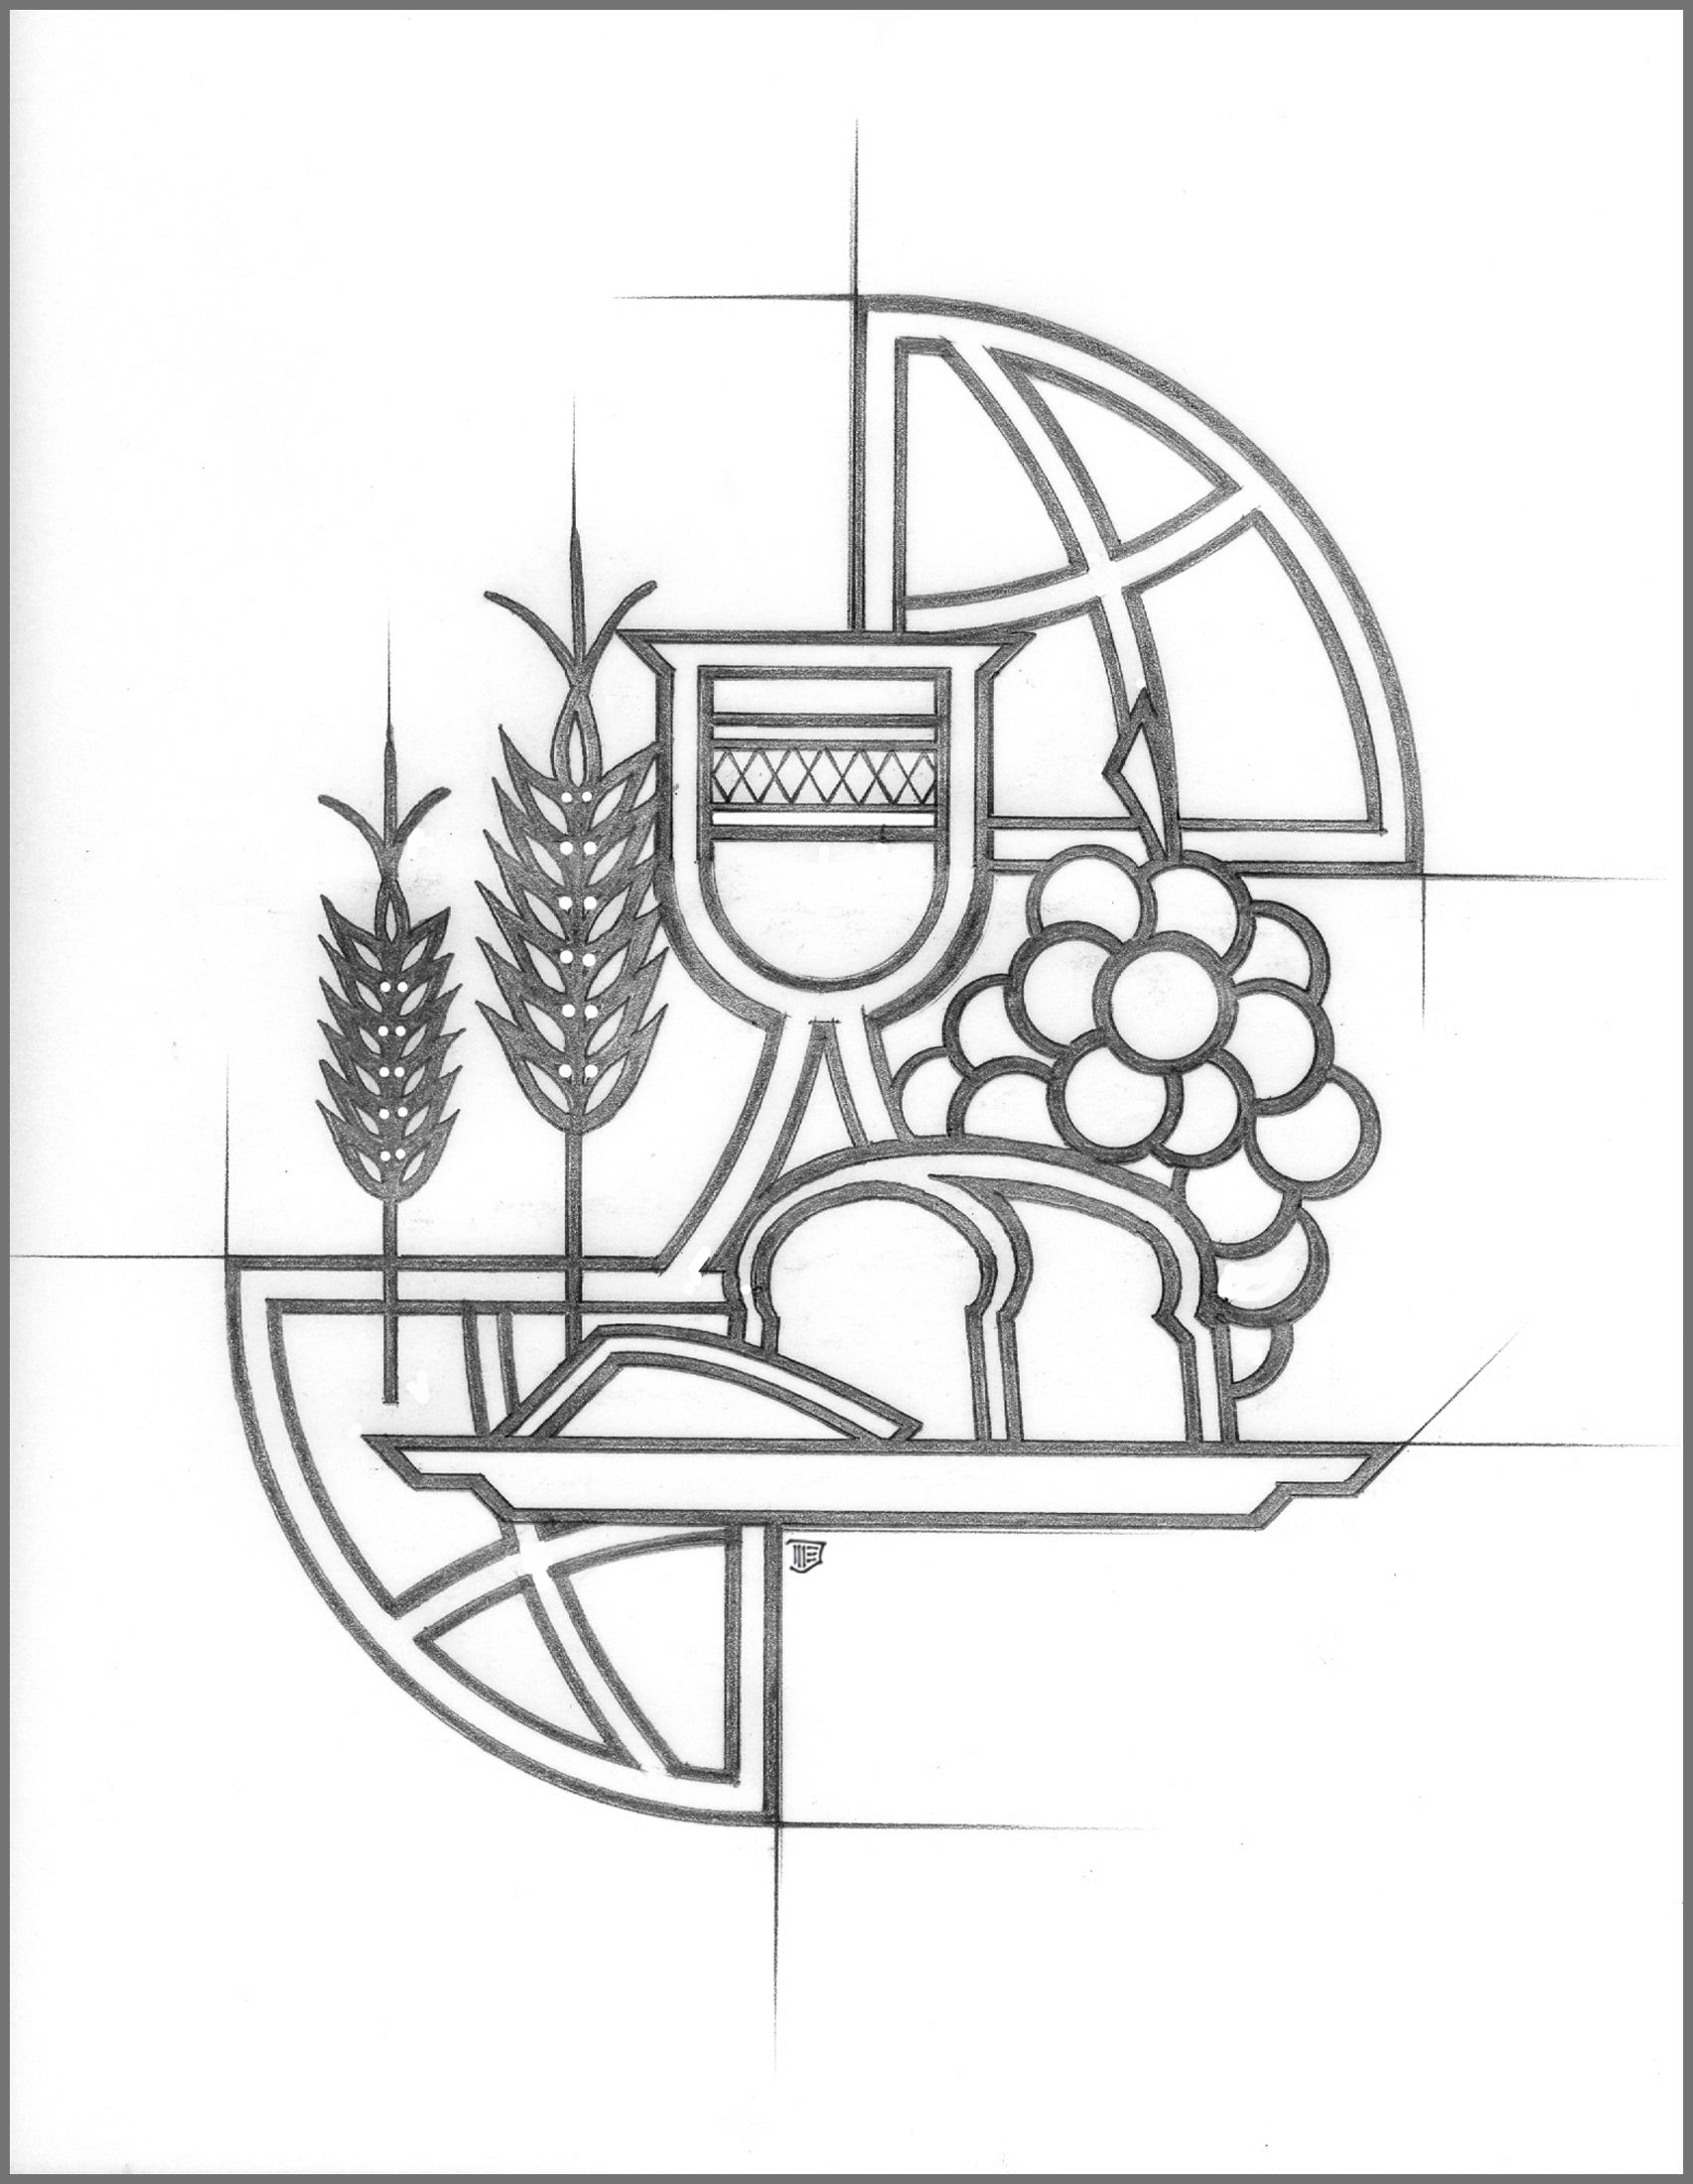 presbyterian catechism coloring pages-#29